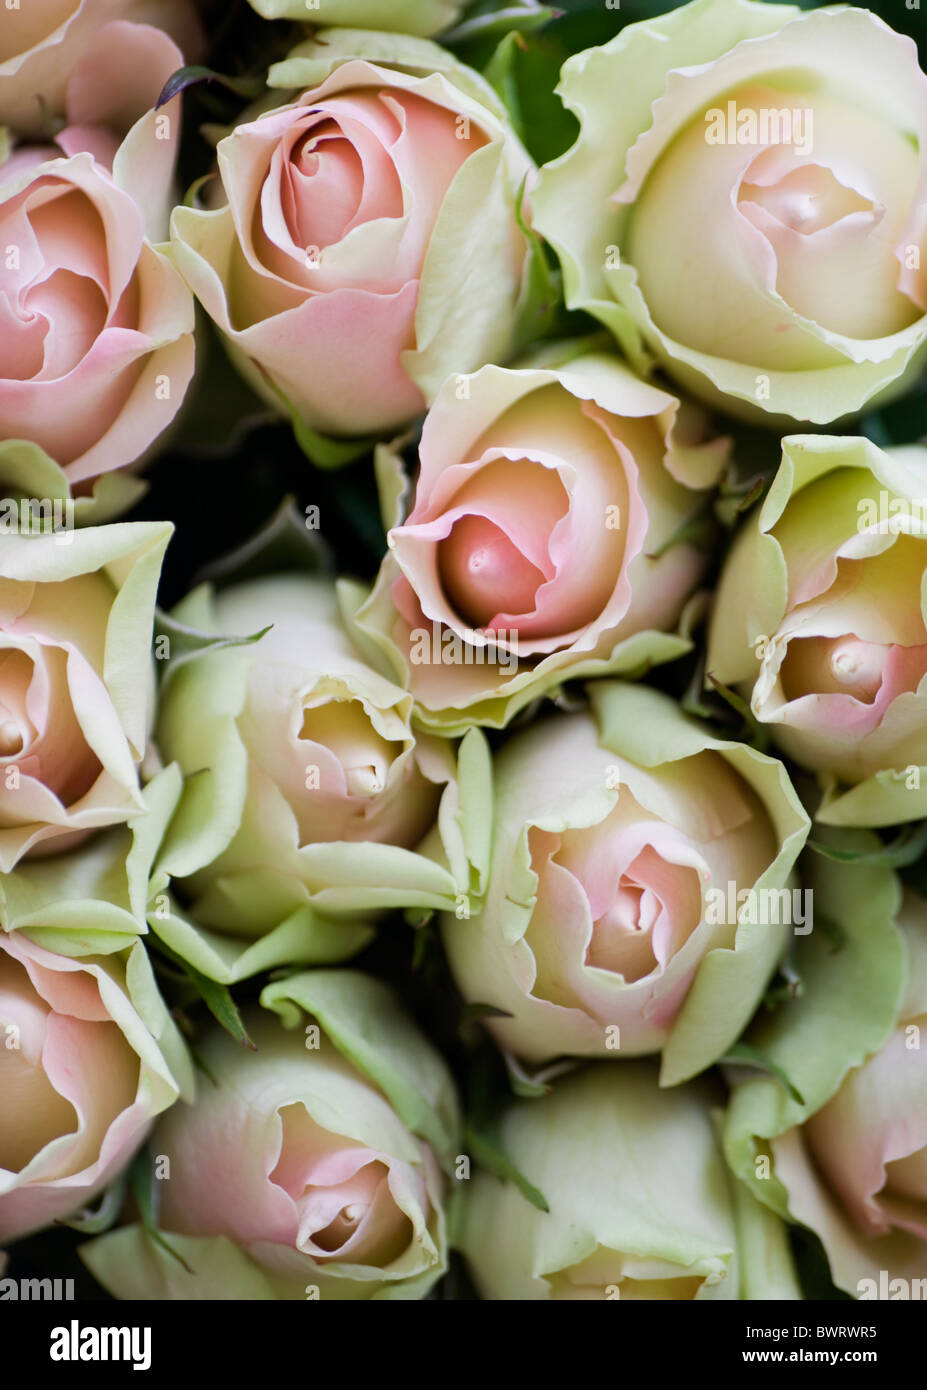 Close-up of a bunch of pink and white roses - Stock Image